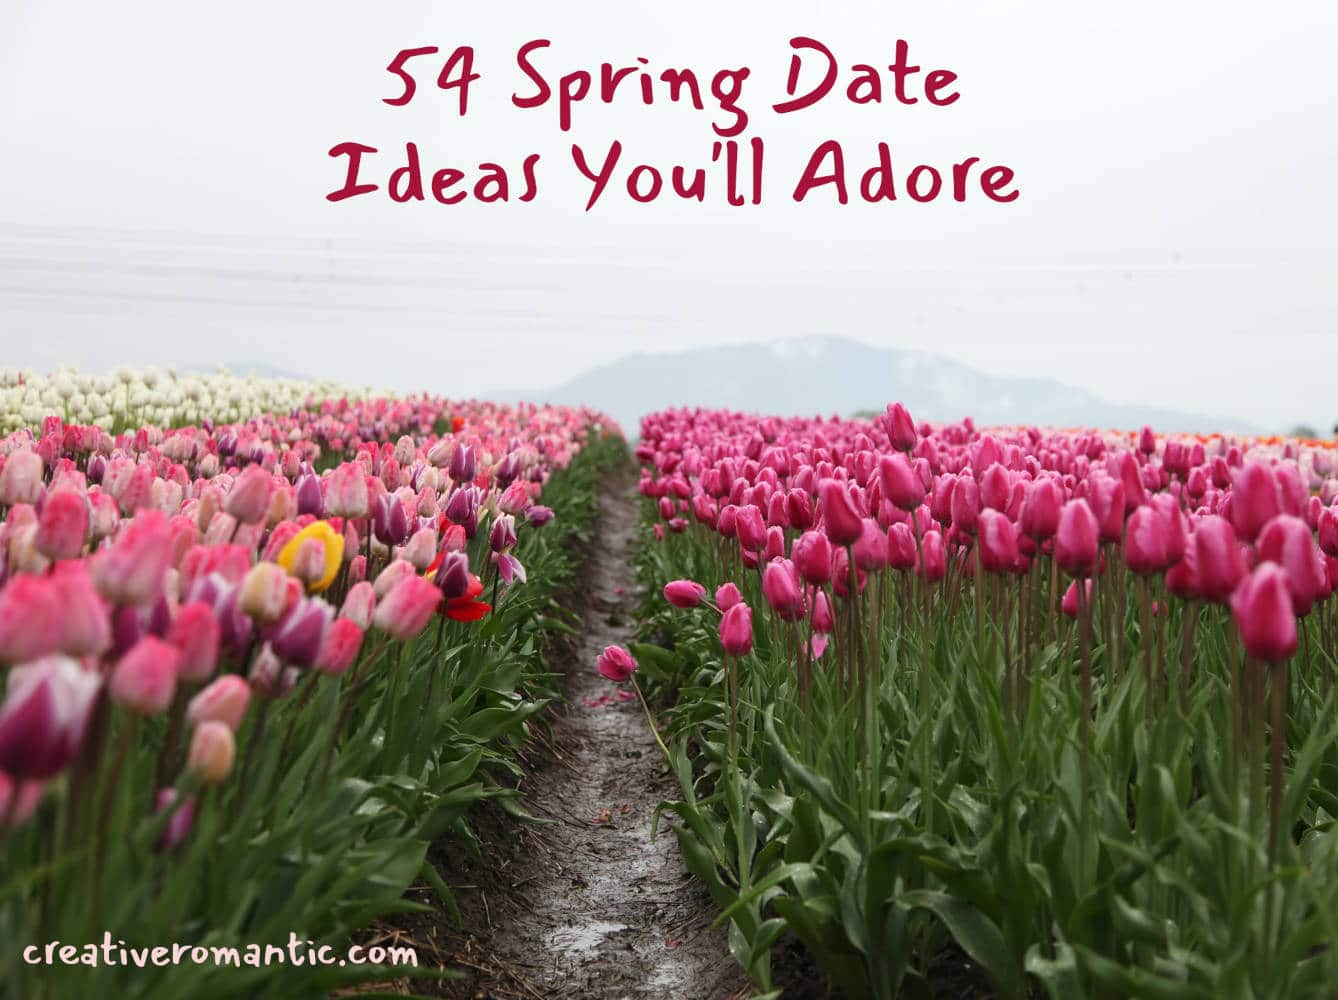 54 Spring Date Ideas You'll Adore